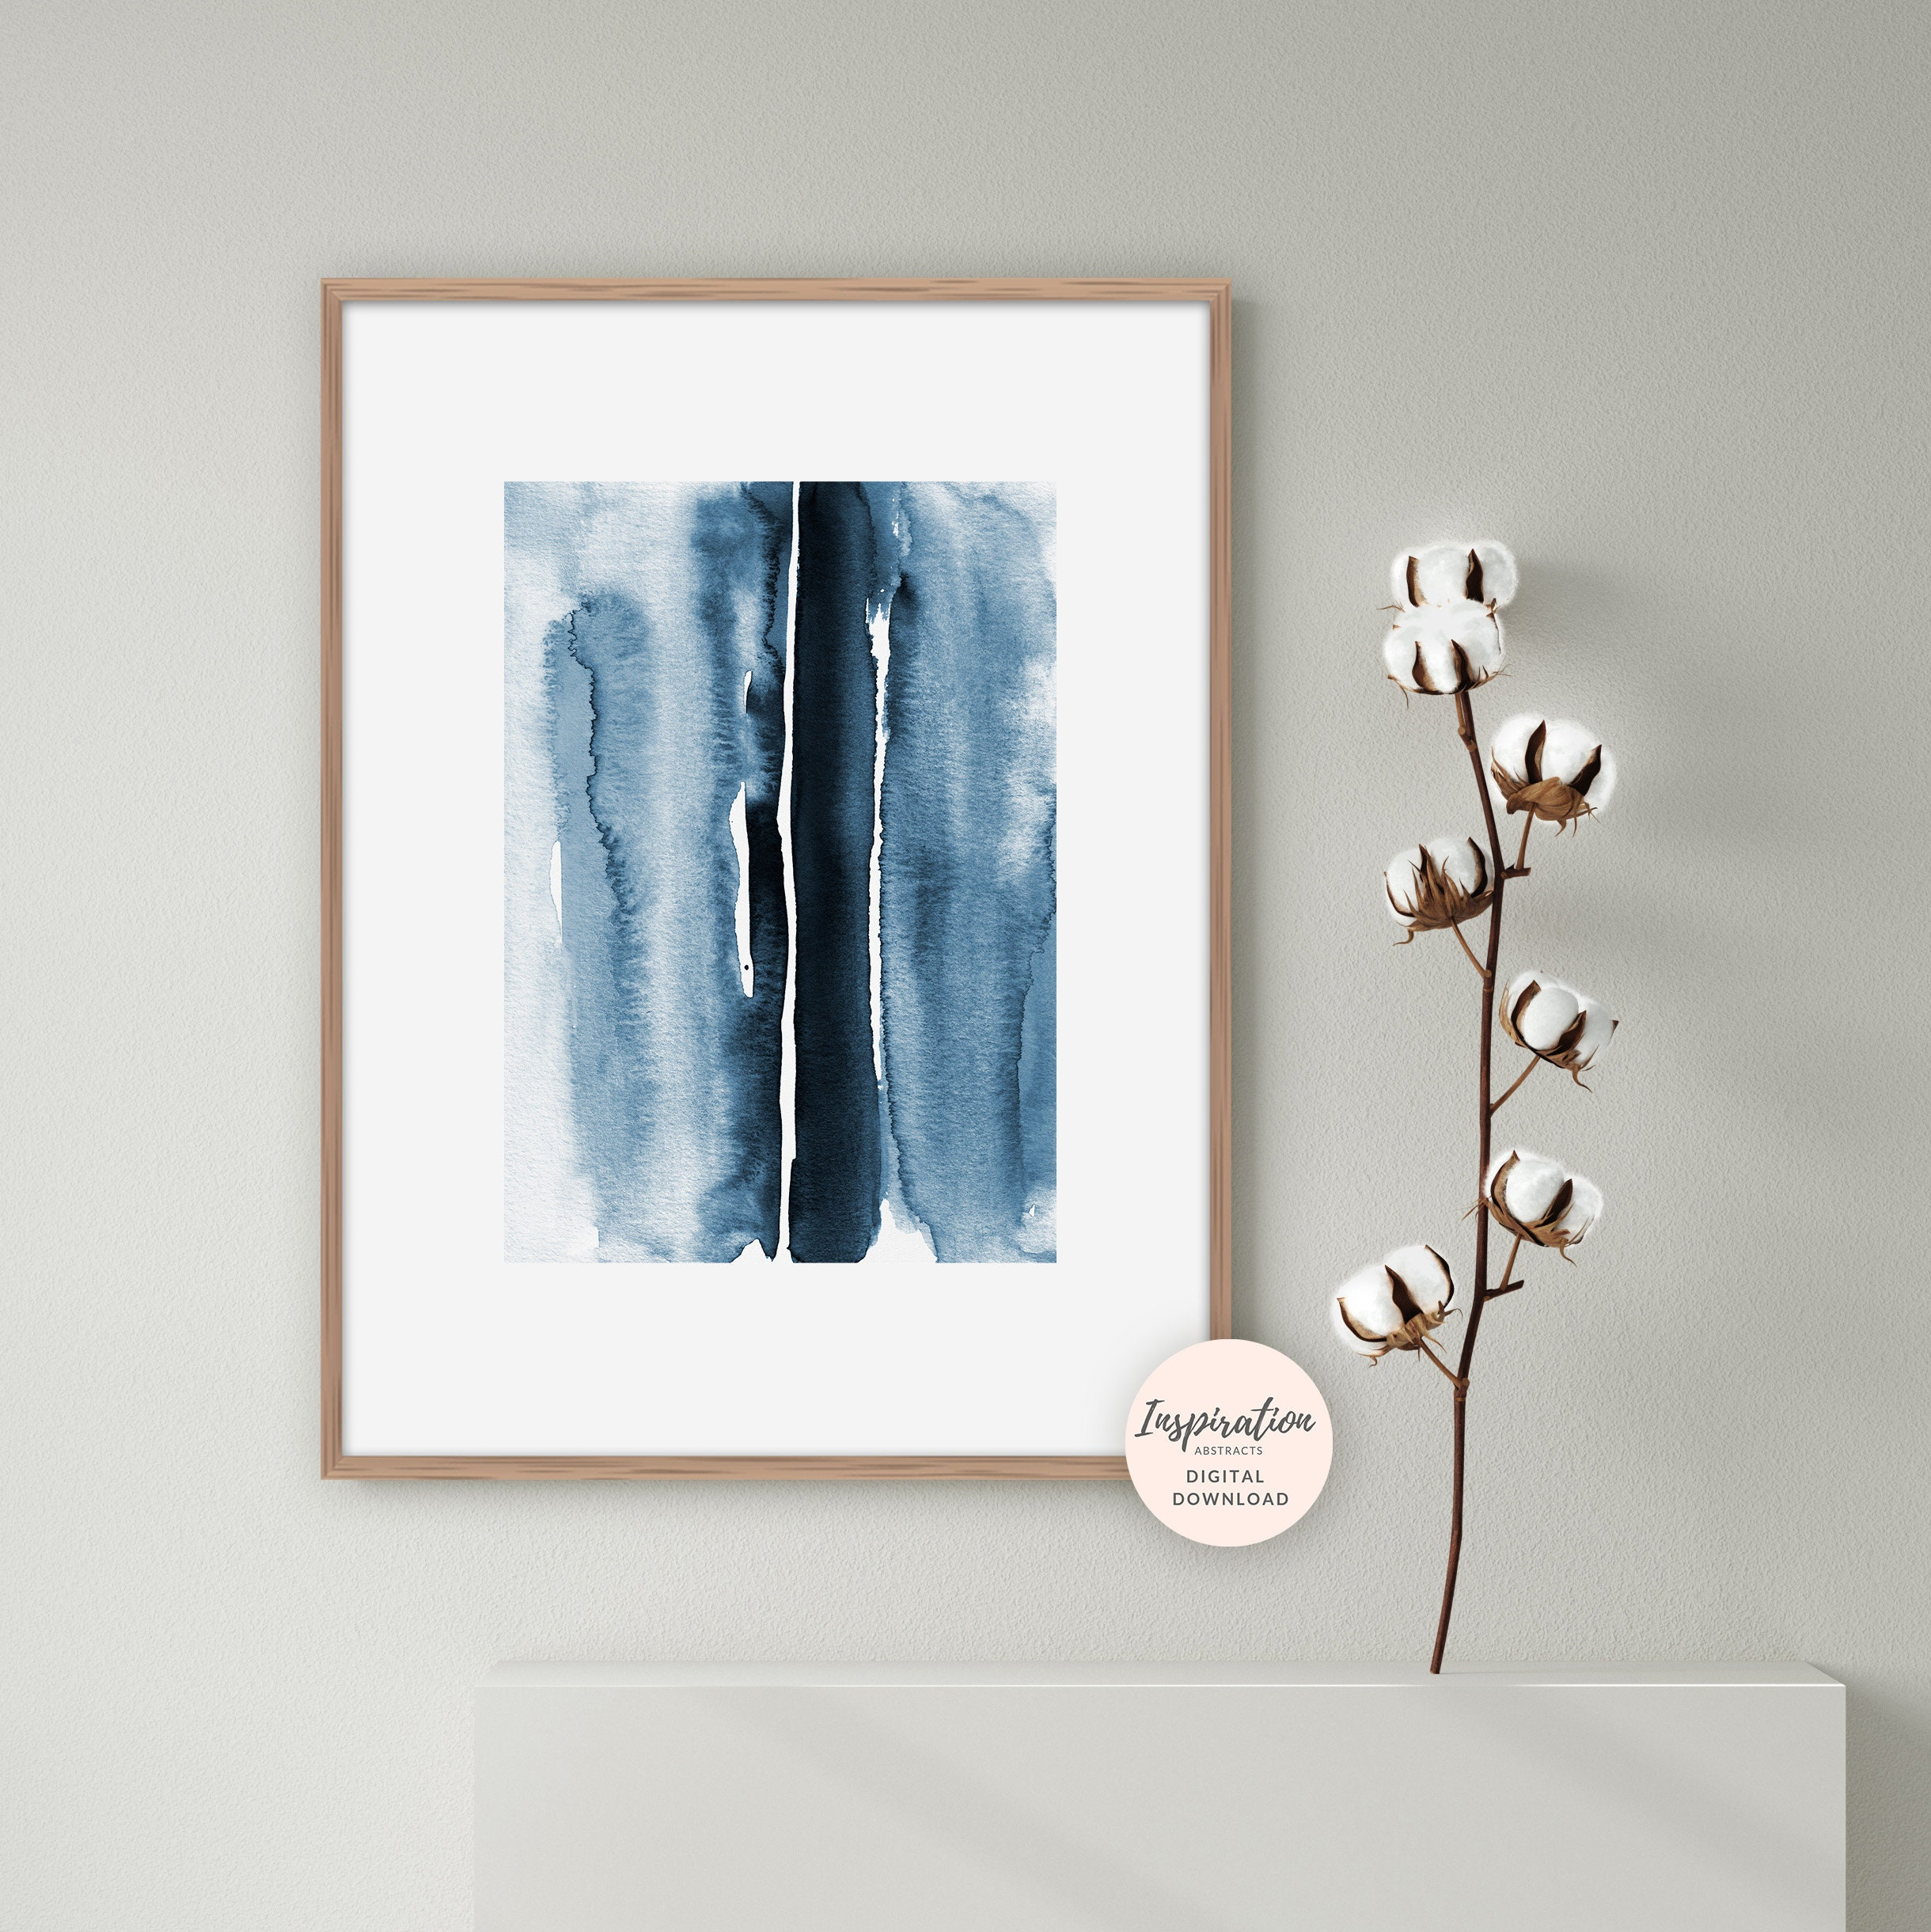 ABSTRACT ART NATURE TREES WALL ART POSTER A1 - A5 SIZES AVAILABLE